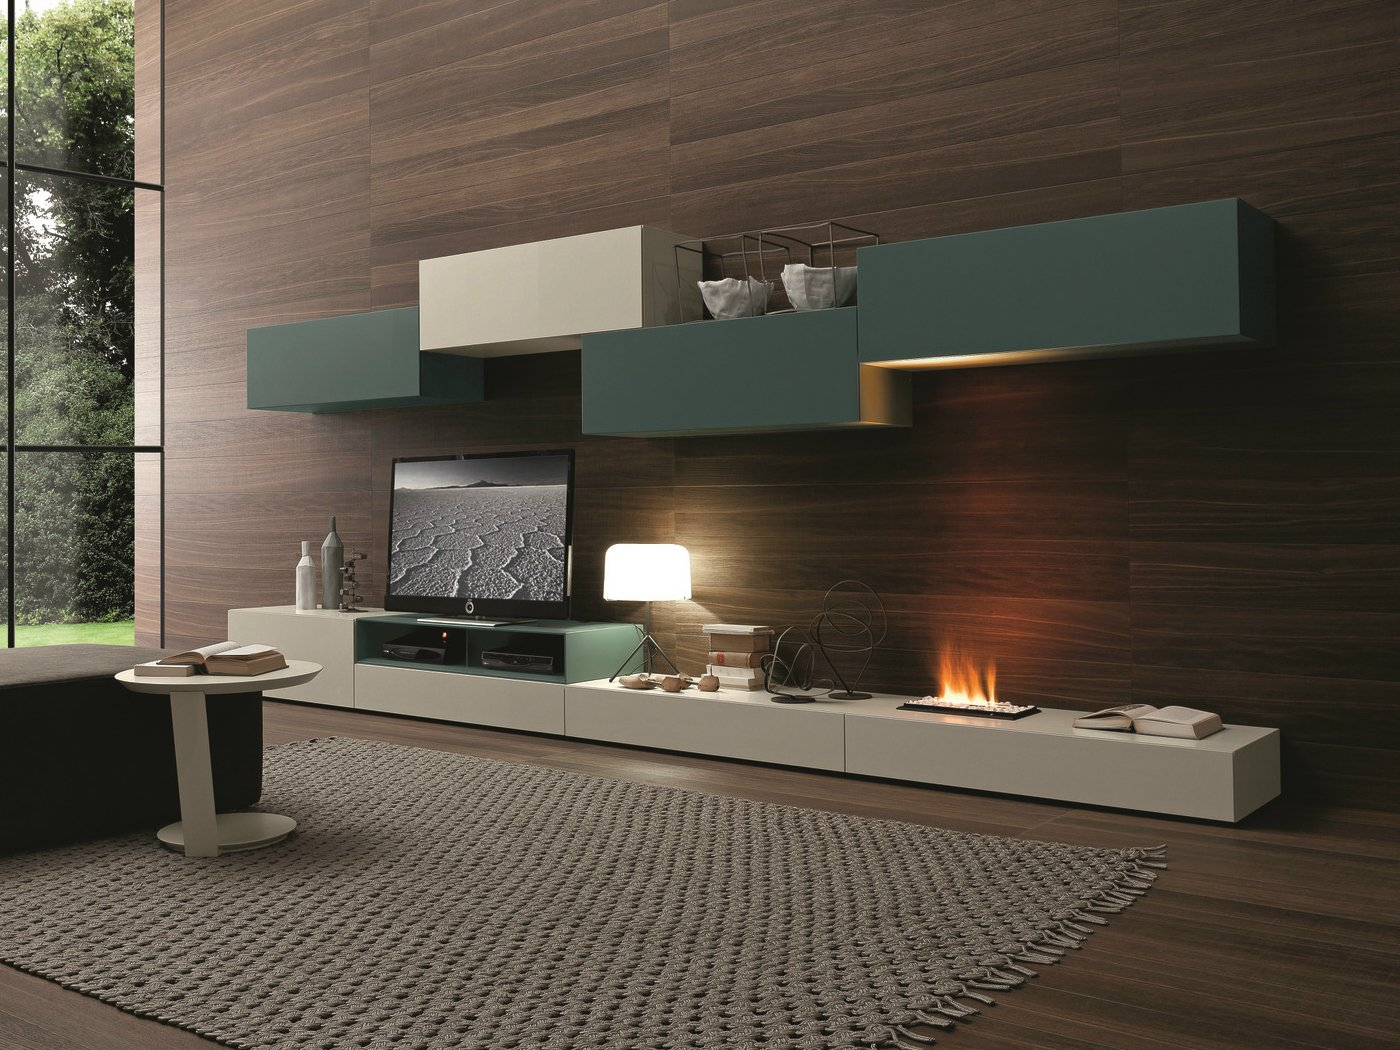 Sectional wall mounted tv wall system 276 by presotto for Presotto industrie mobili